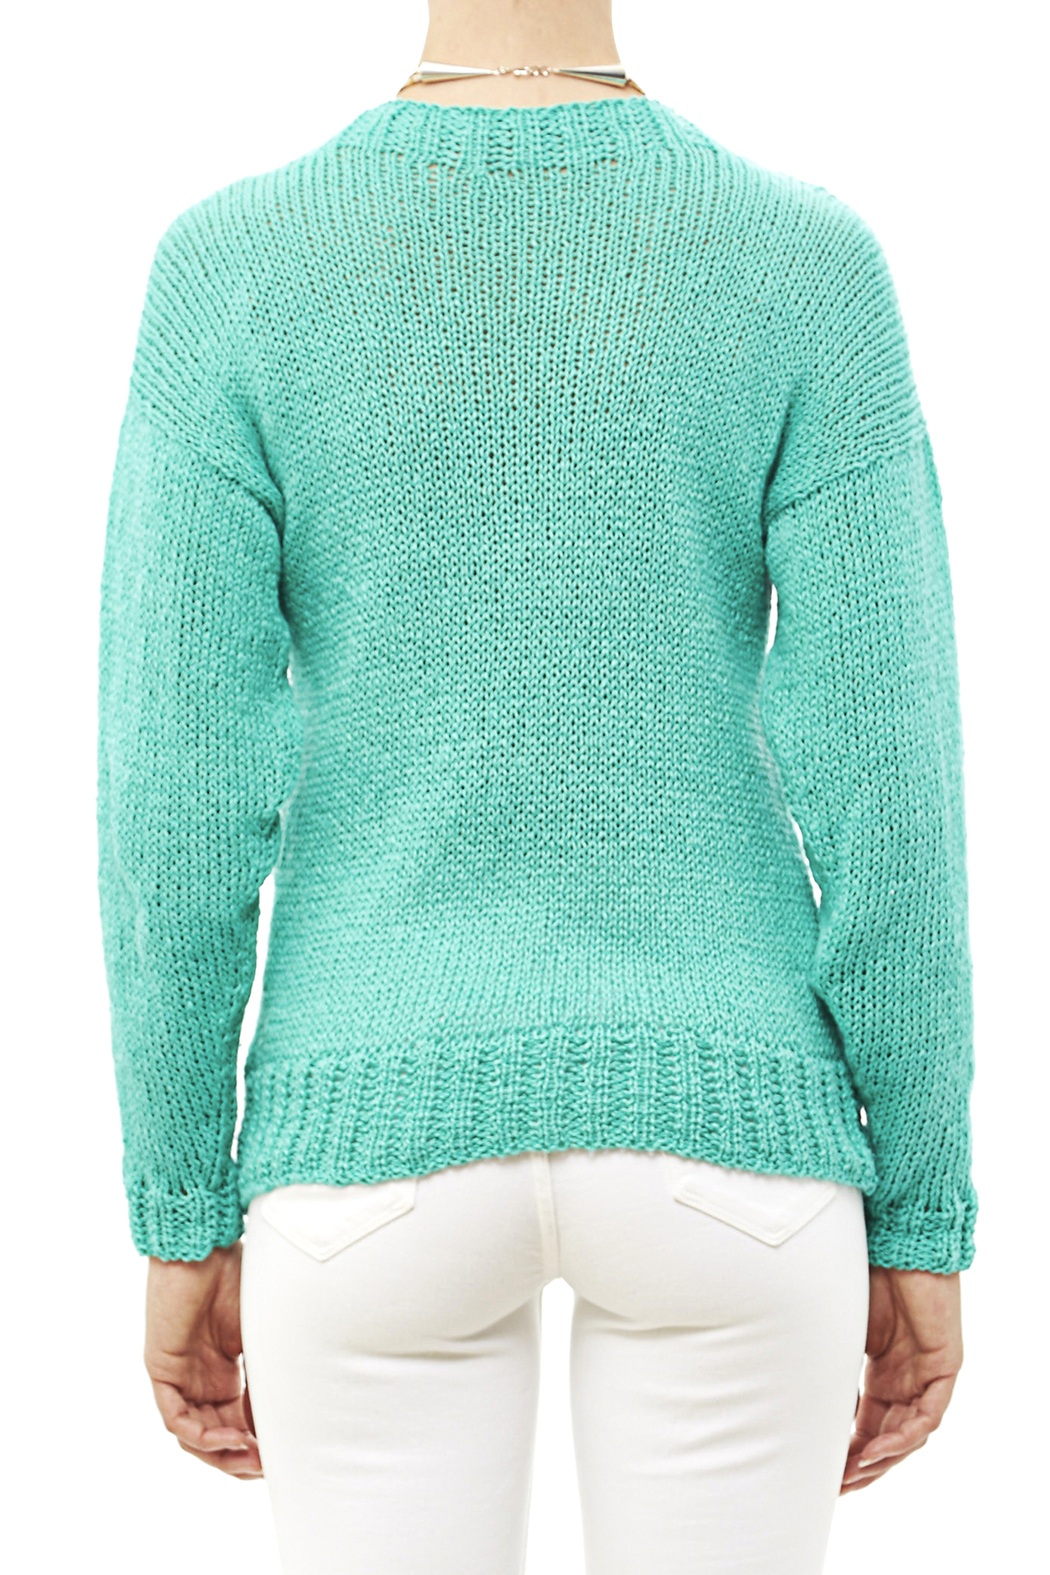 DC KNITS Comfy Cotton Turquoise Sweater - Back Cropped Image